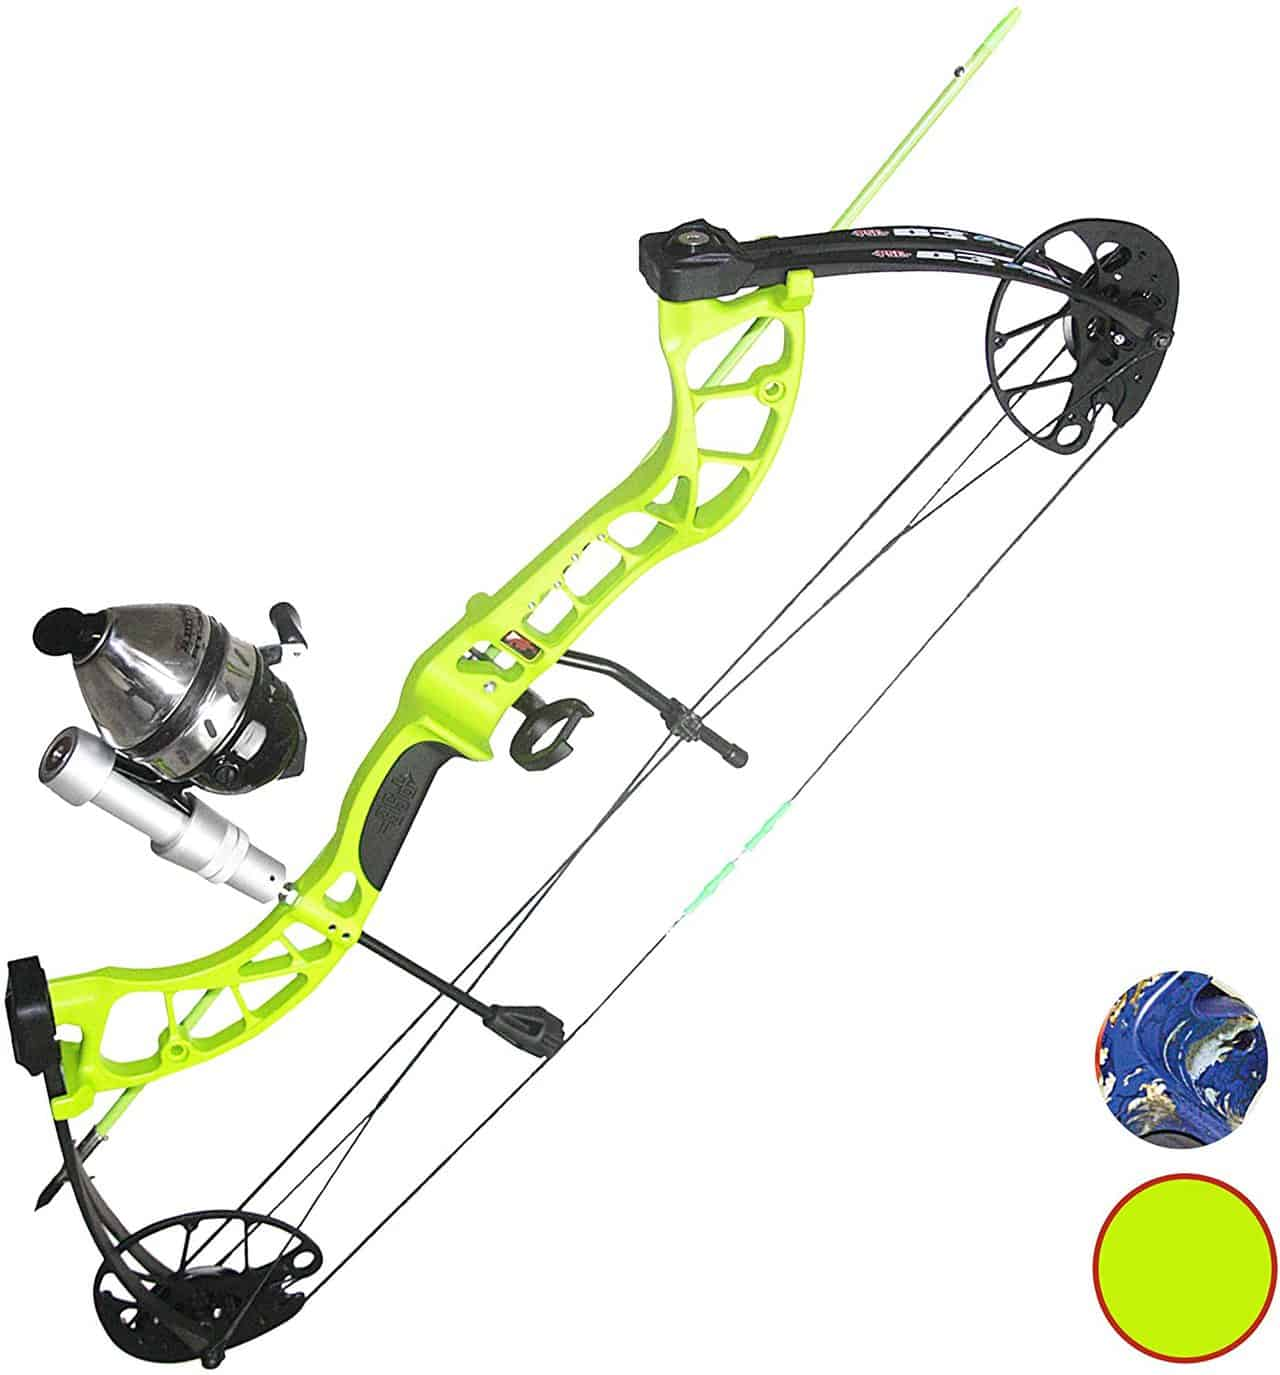 Bowfishing Bow and Reel by PSE Archery